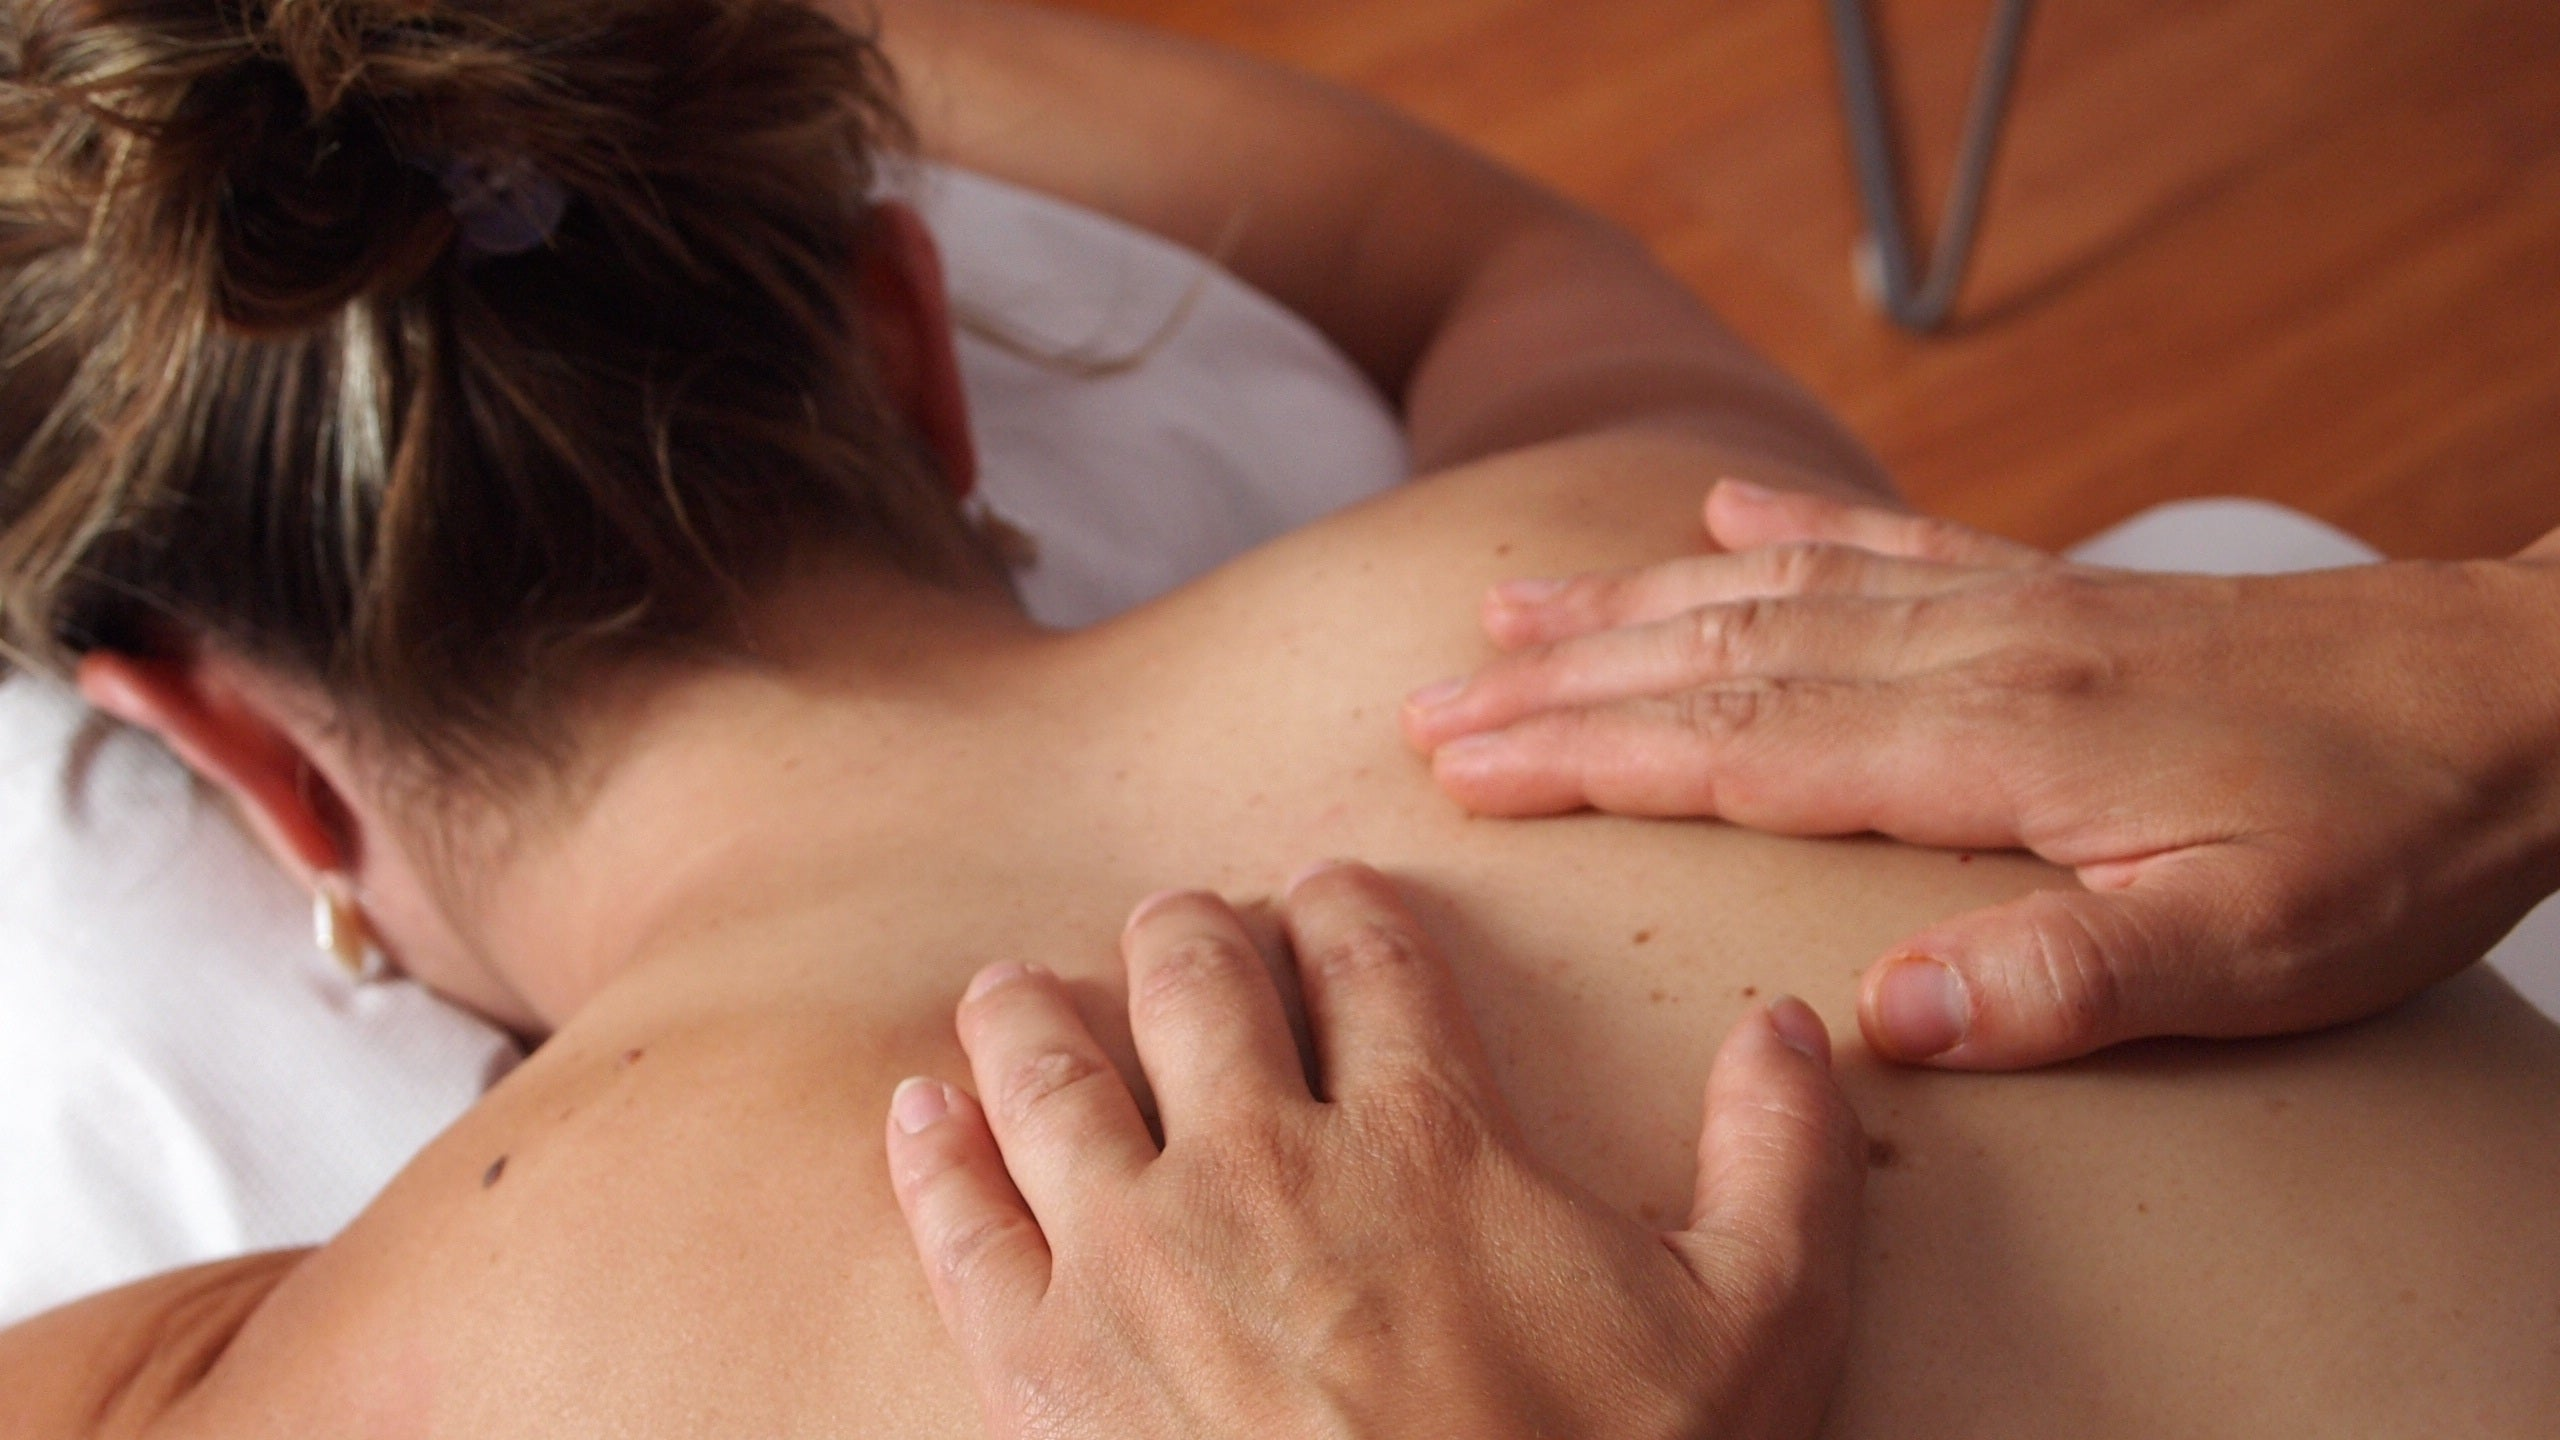 How To Know When A Massage Turns Inappropriate